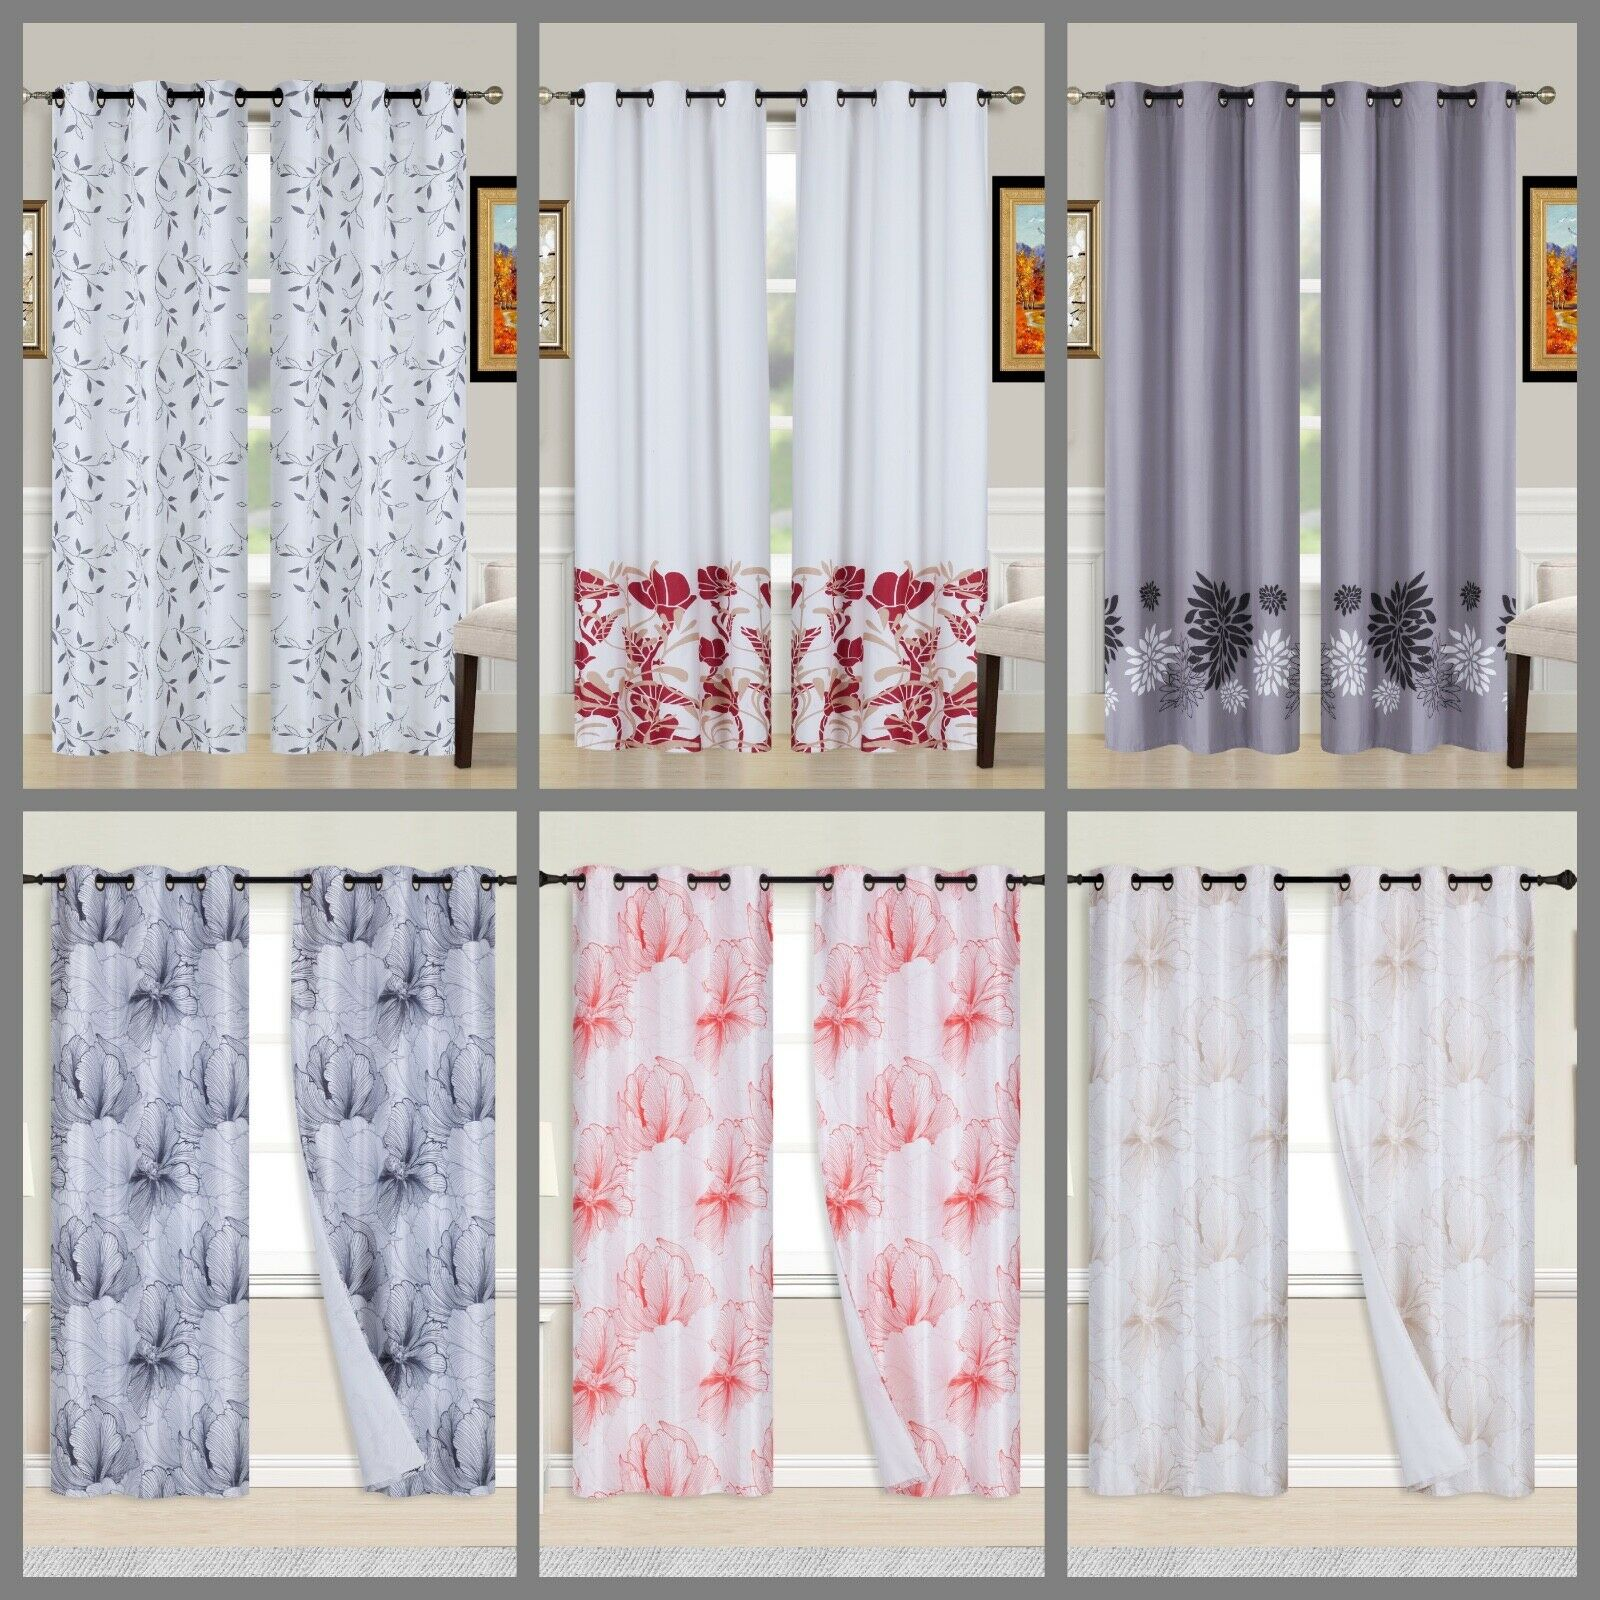 Picture of: Modern Blackout Curtains For Living Room Bedroom Window Curtains For For Sale Online Ebay